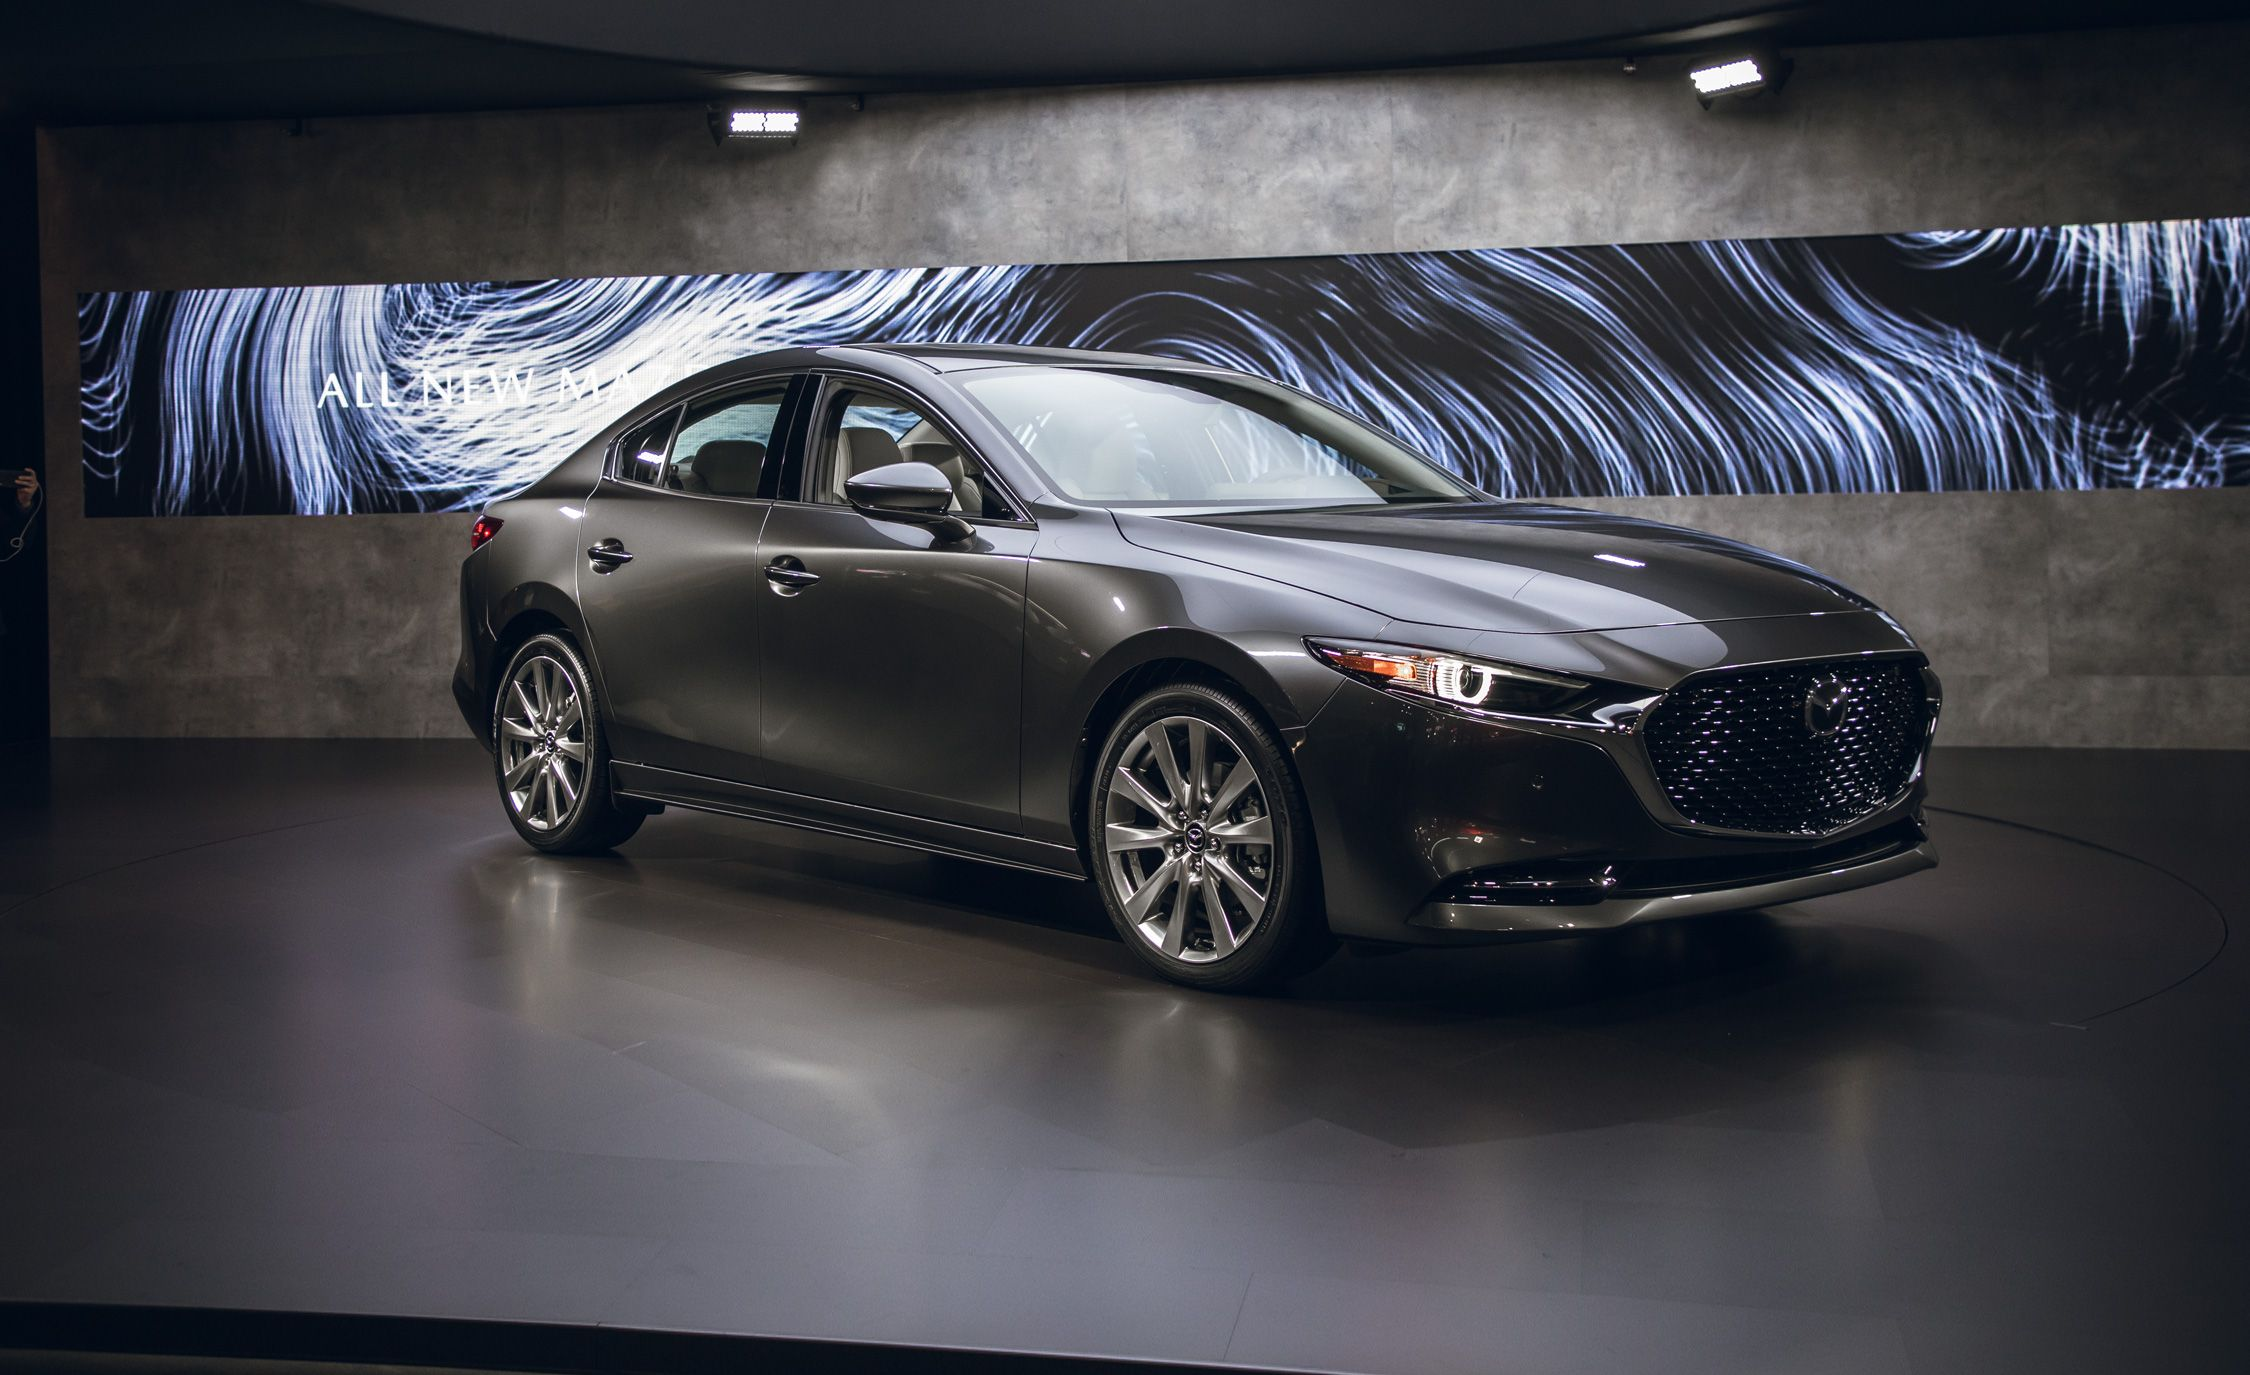 Top 10 Cars Of 2019 New Cars For 2019 Whats Coming This Year